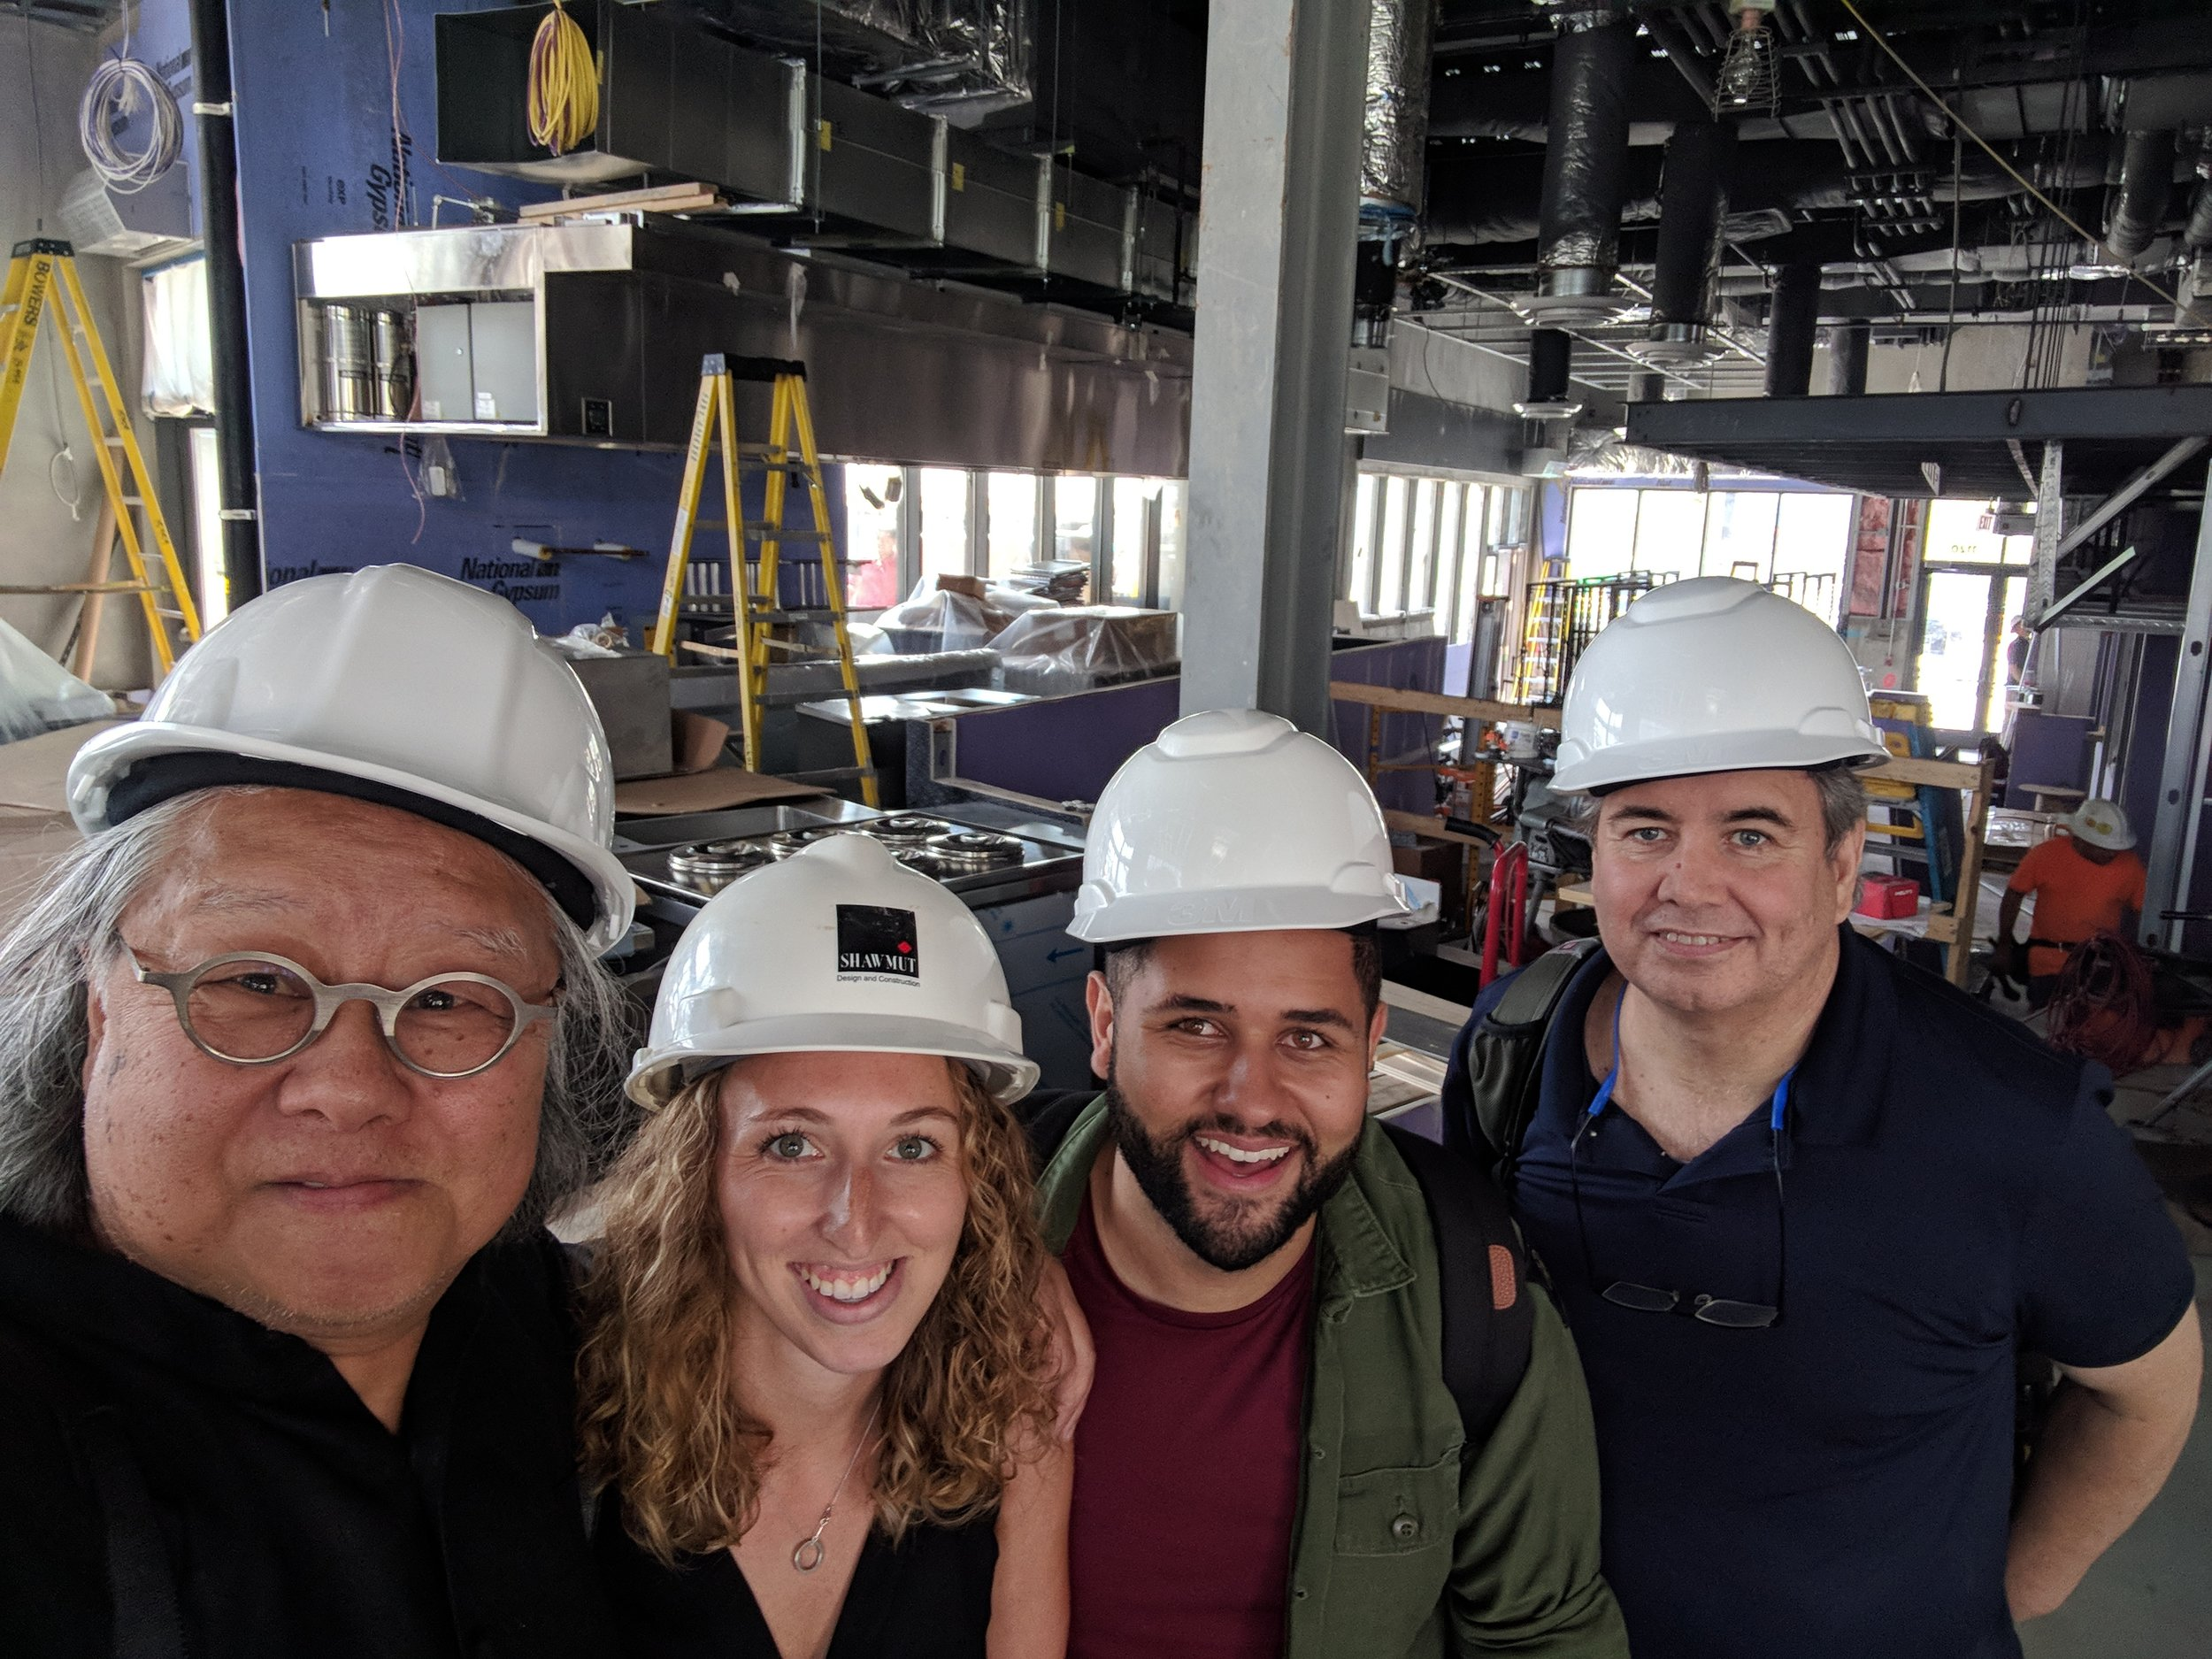 YuiDesign team members on-site during construction of Officina, Chef Nick Stefanelli's latest project, an Italian market and restaurant opening Fall 2018 at The Wharf in DC